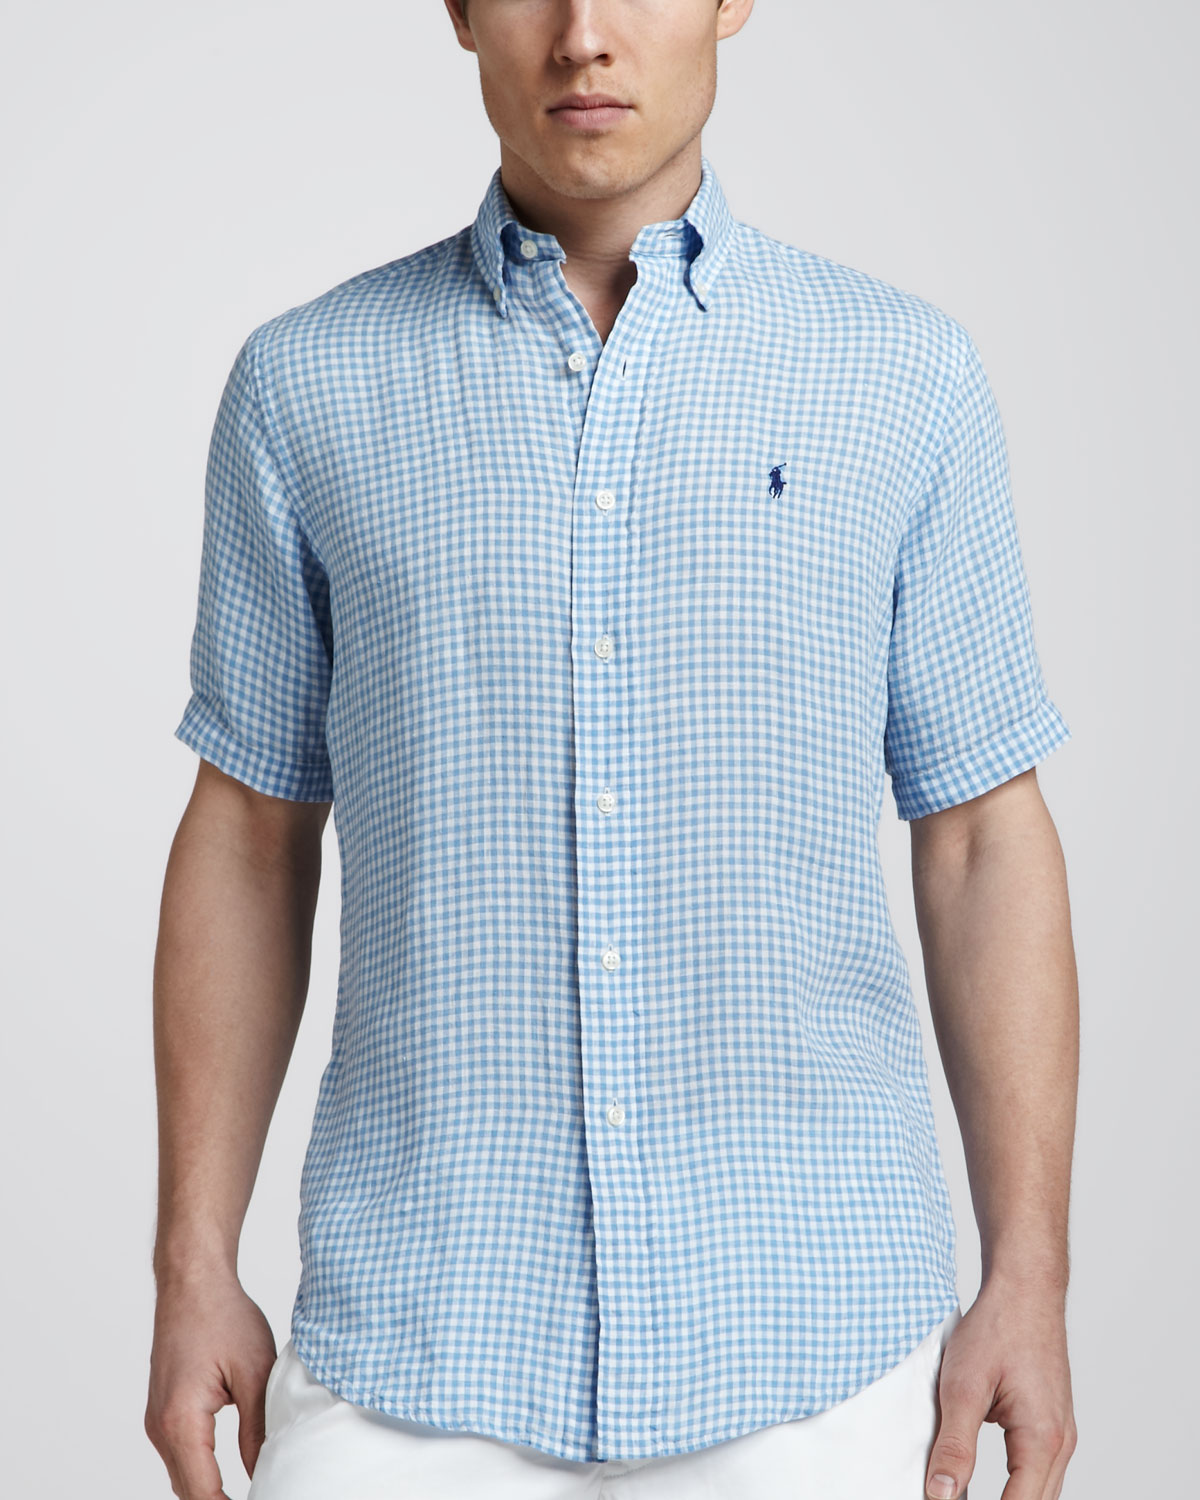 470ad2989 Polo Ralph Lauren Gingham Short-Sleeve Linen Shirt, Light Blue ...